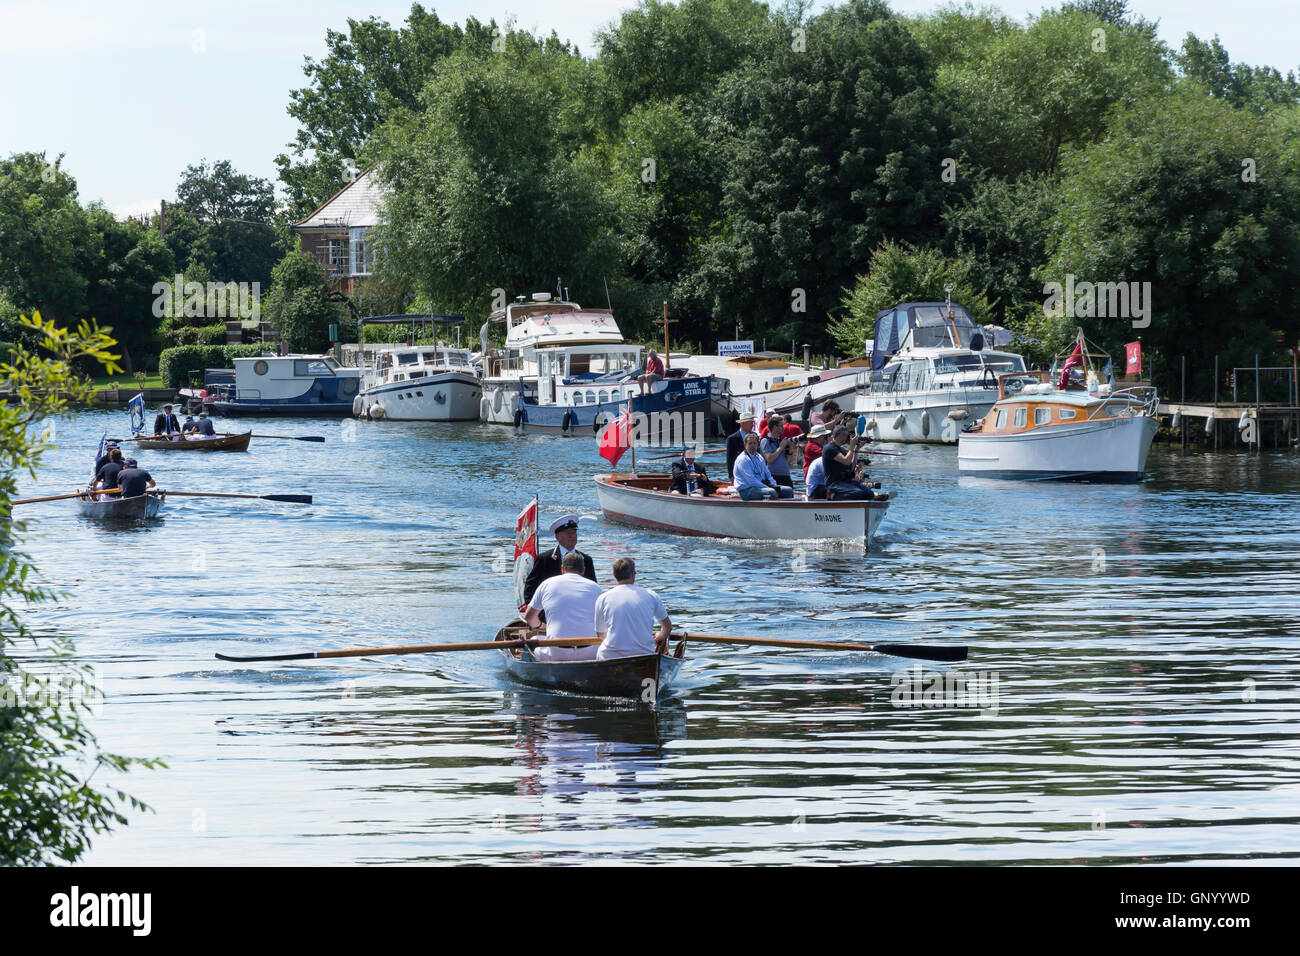 Swan Upping boats and skiffs on Thames River at Lalham Reach, Laleham, Surrey, England, United Kingdom - Stock Image